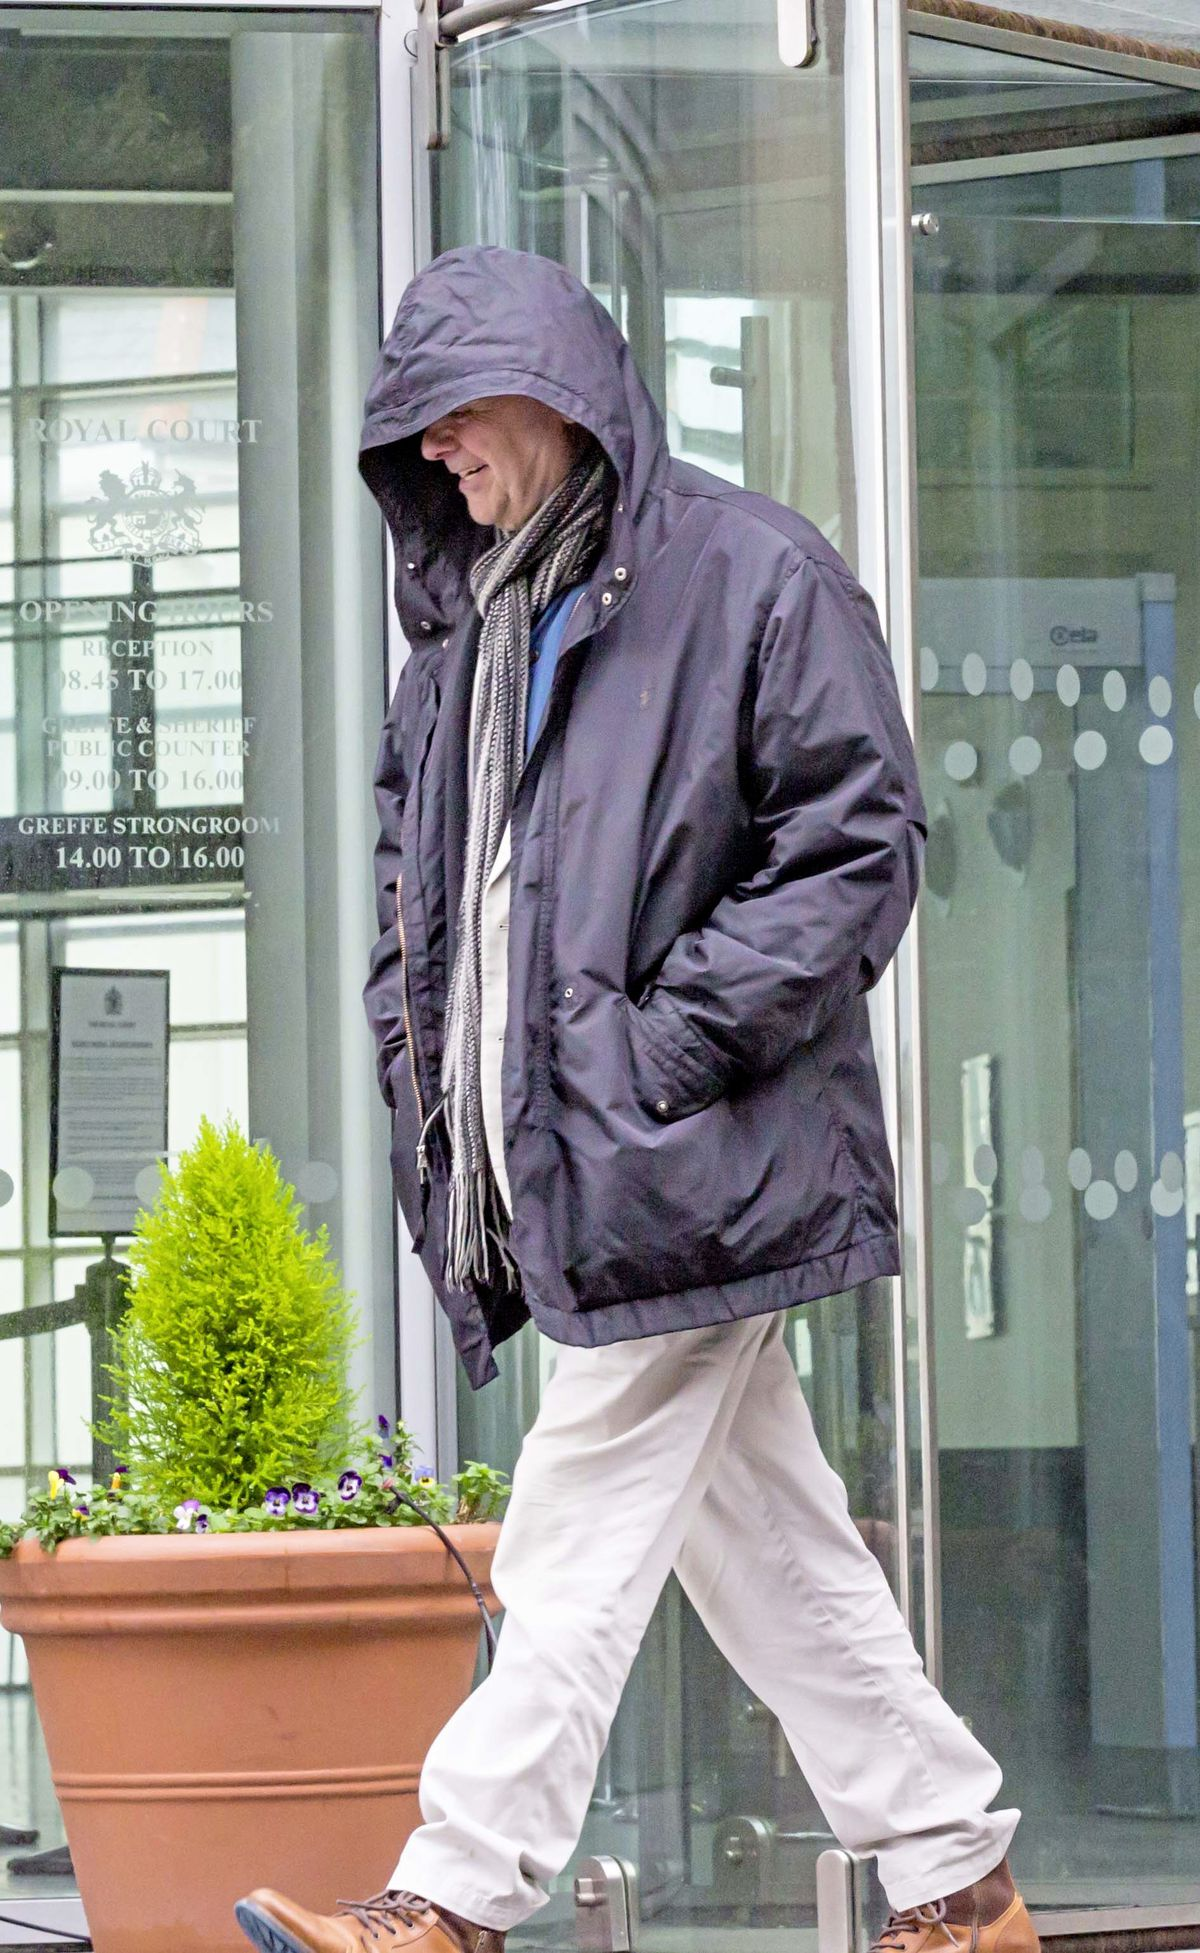 Paul Alan Bettie, 65, leaving the Royal Court yesterday after he was found guilty of money laundering. He has been granted bail, pending a probation report.